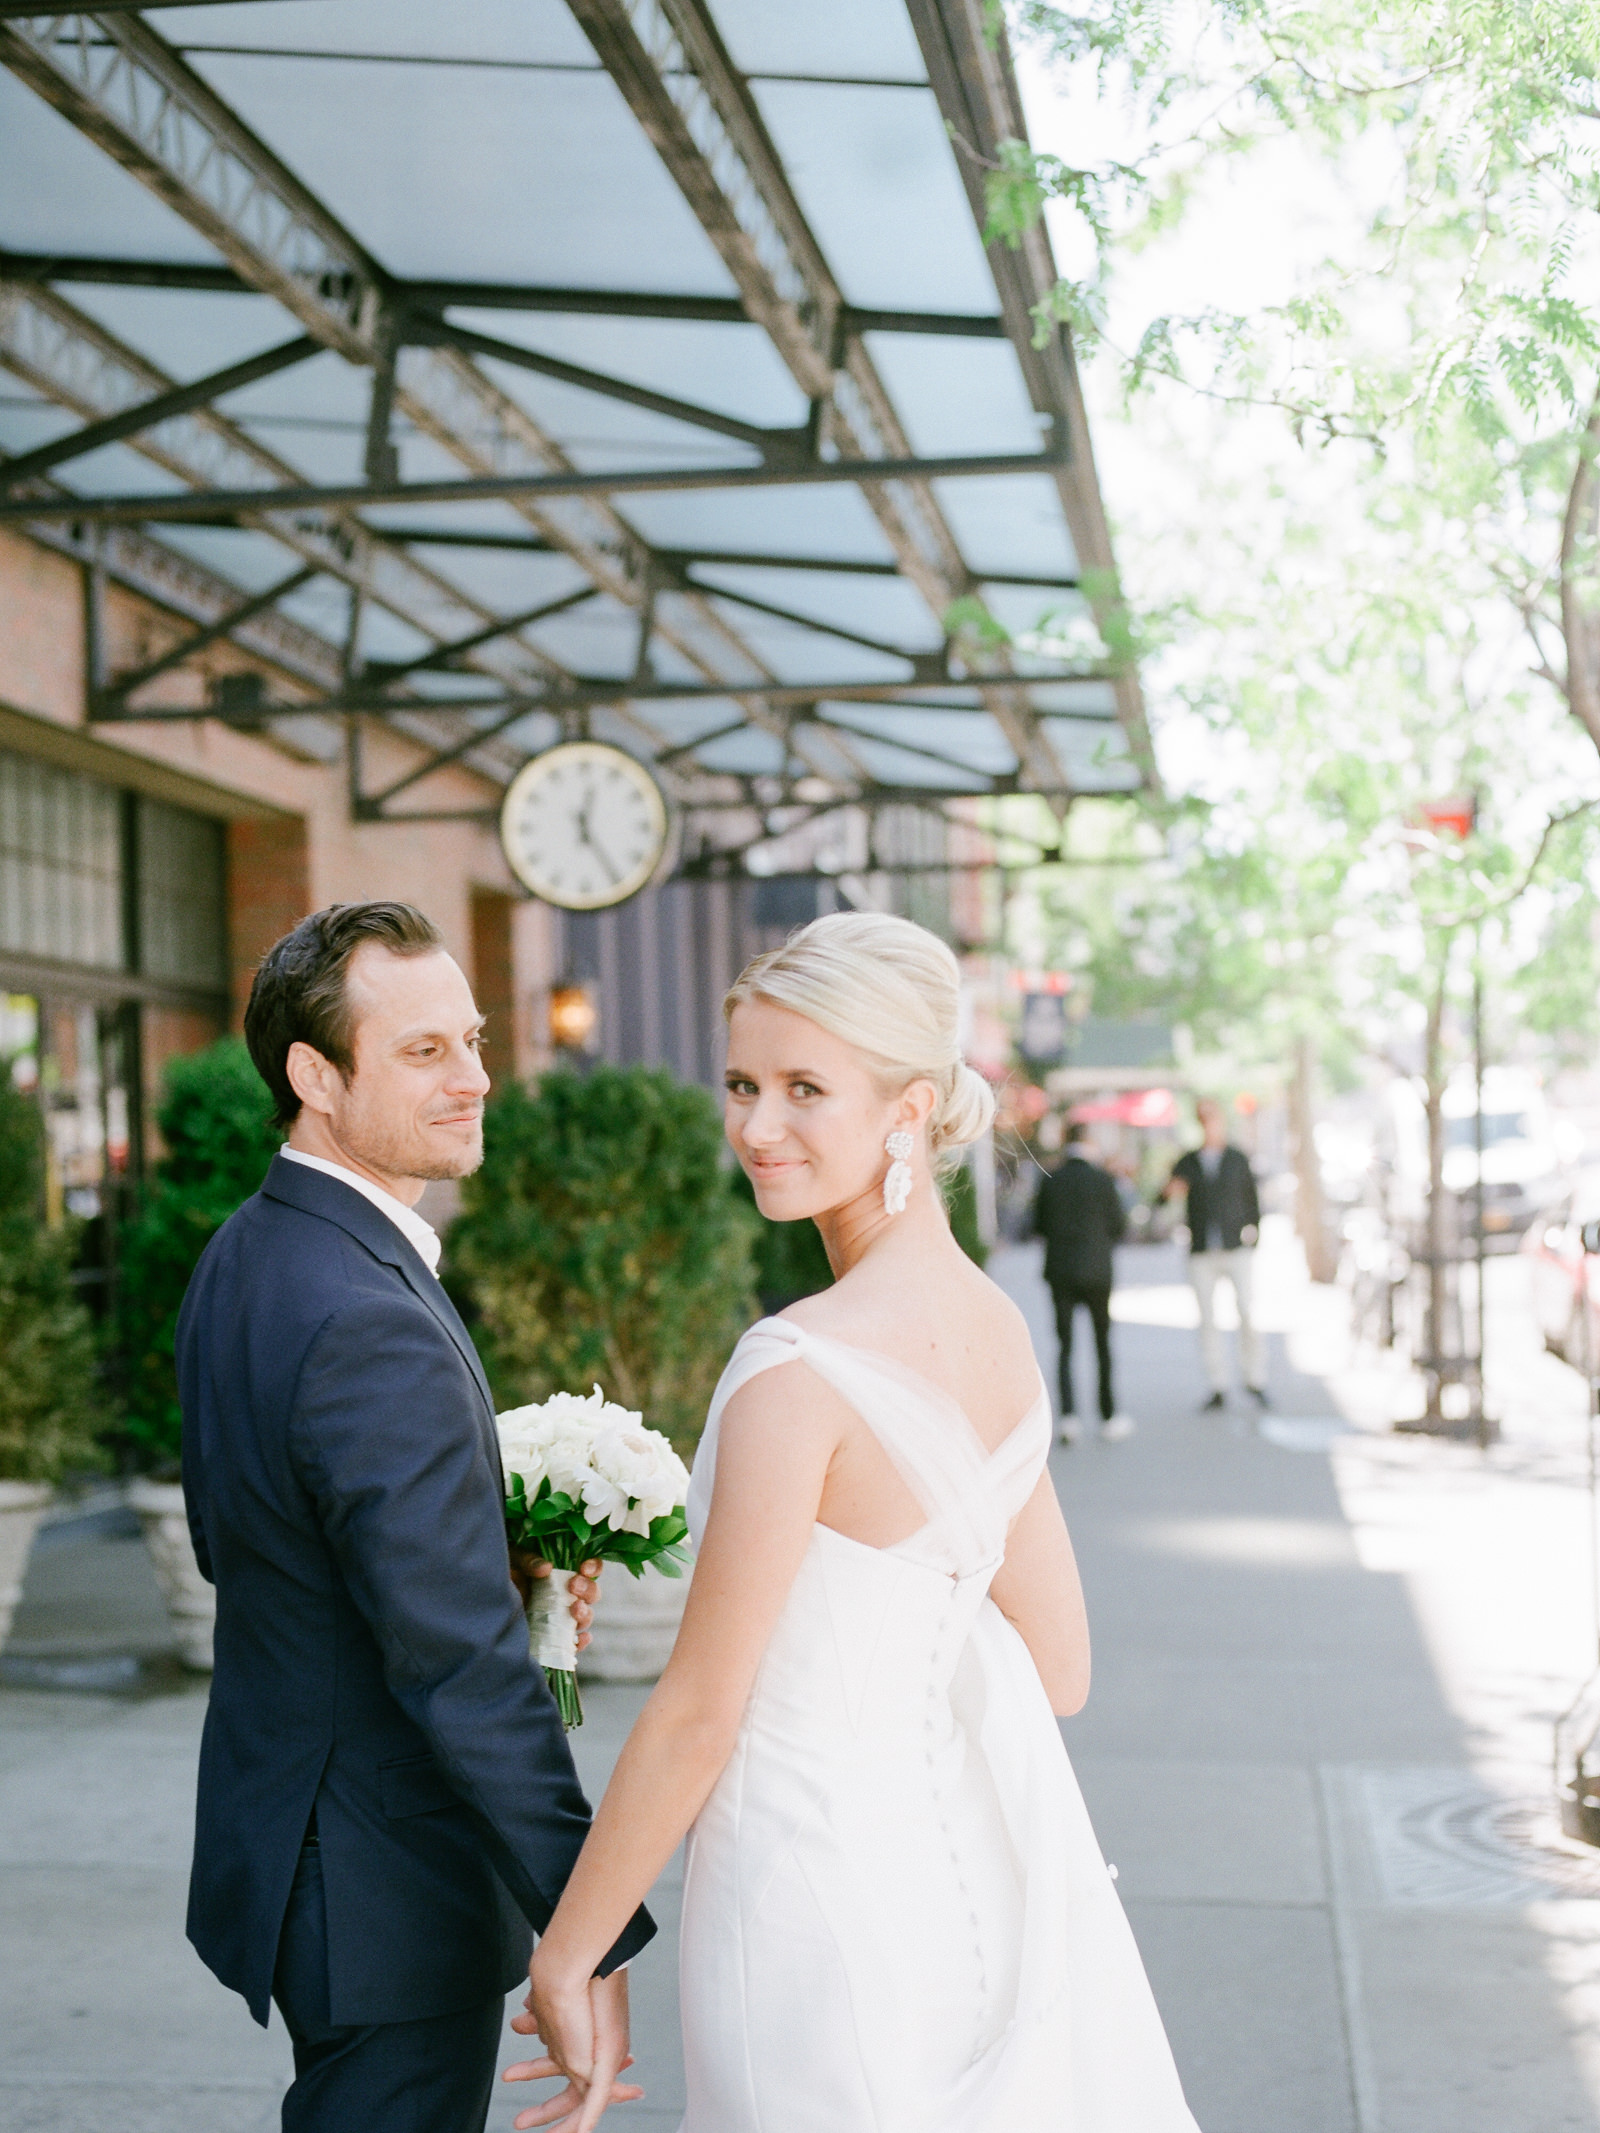 Intimate-NYC_wedding_ by Tanya Isaeva-94.jpg